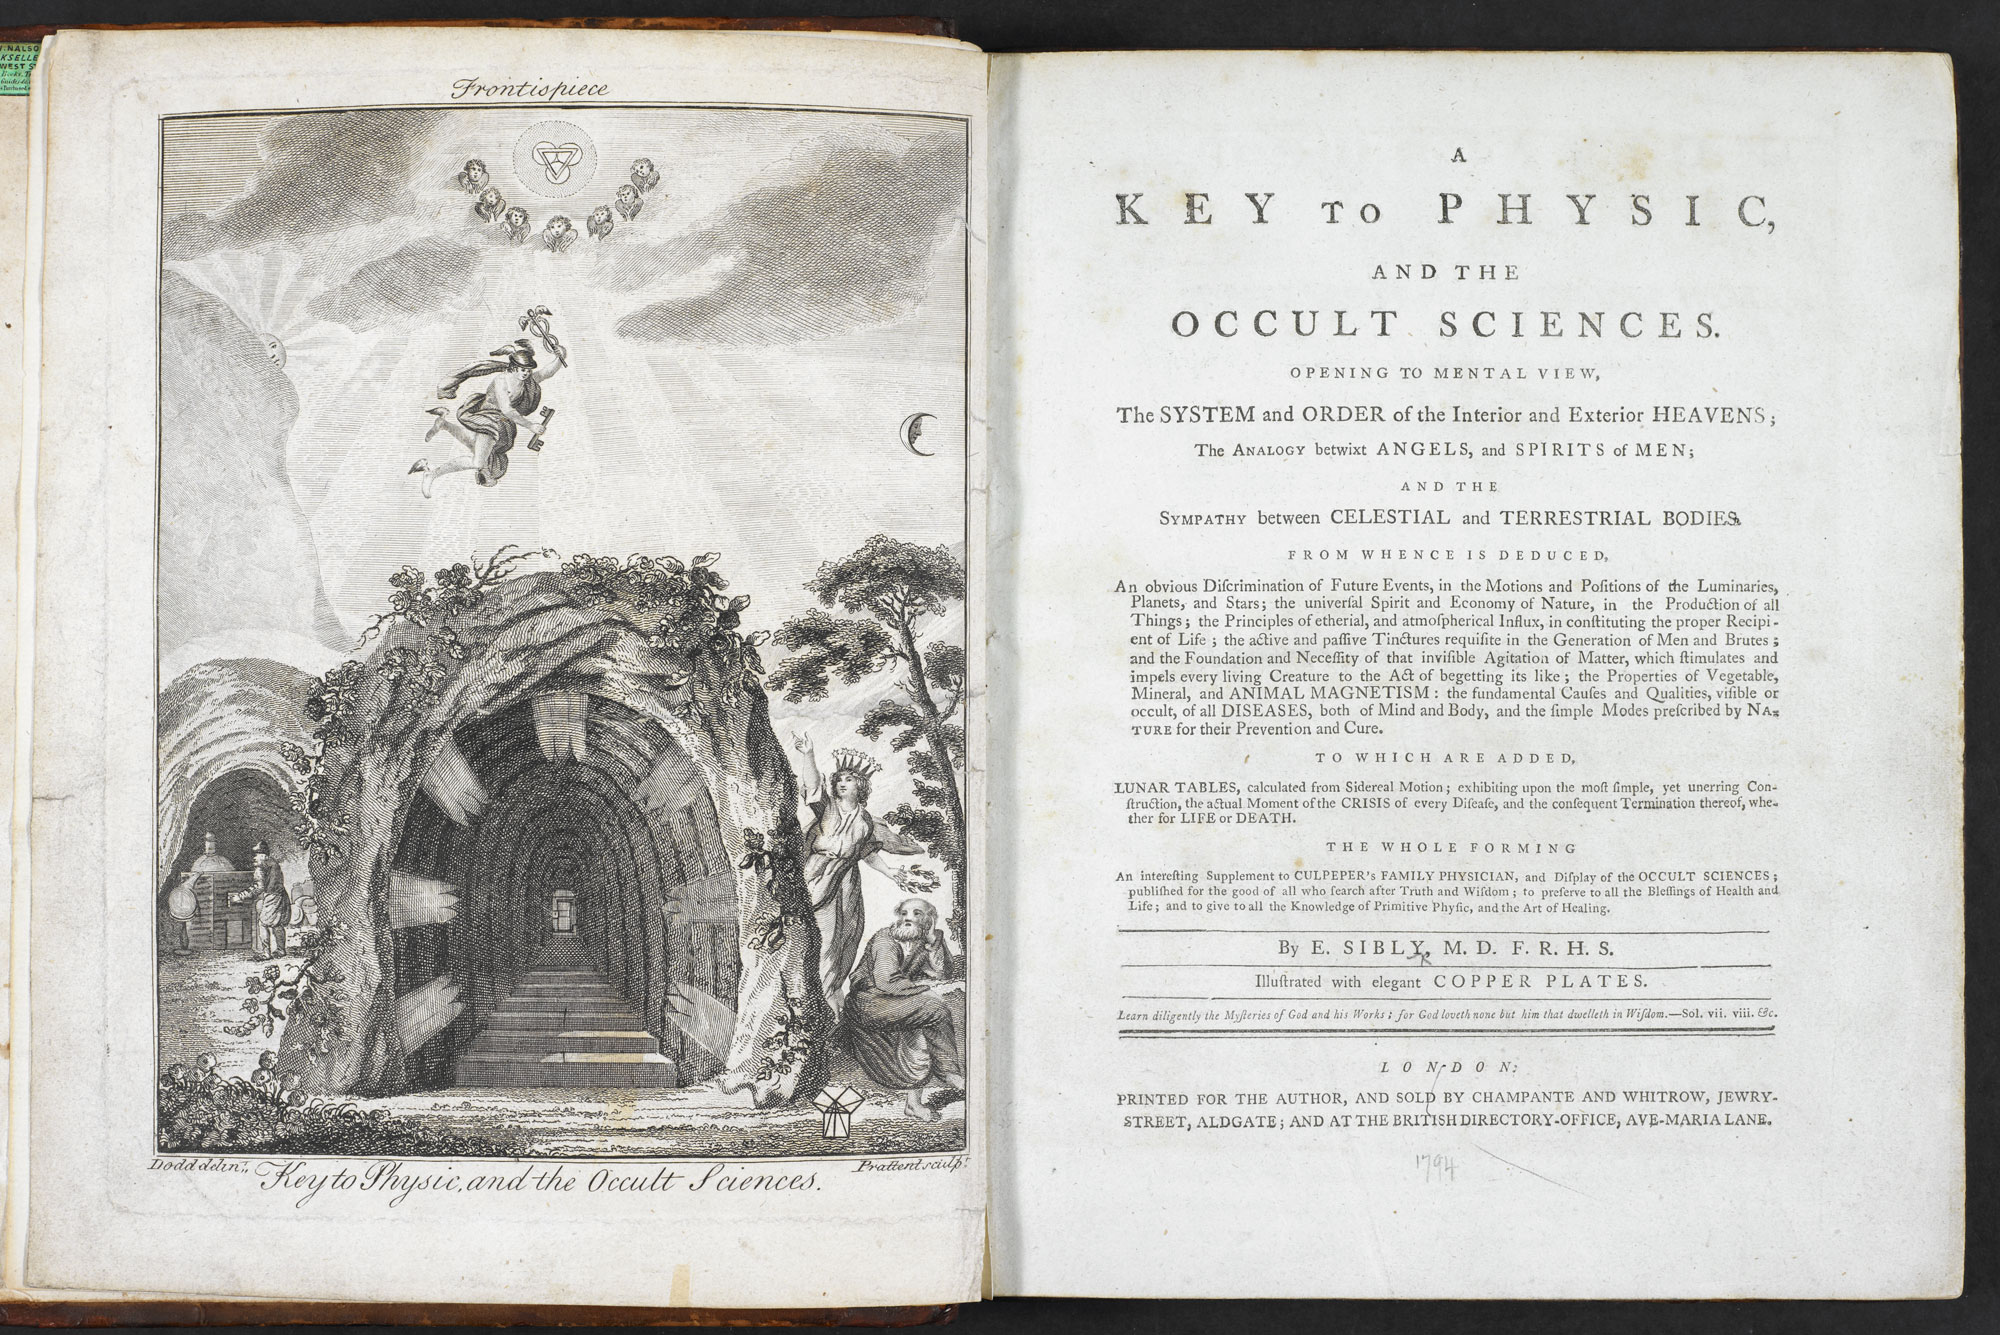 A Key to Physic, and the Occult Sciences - The British Library